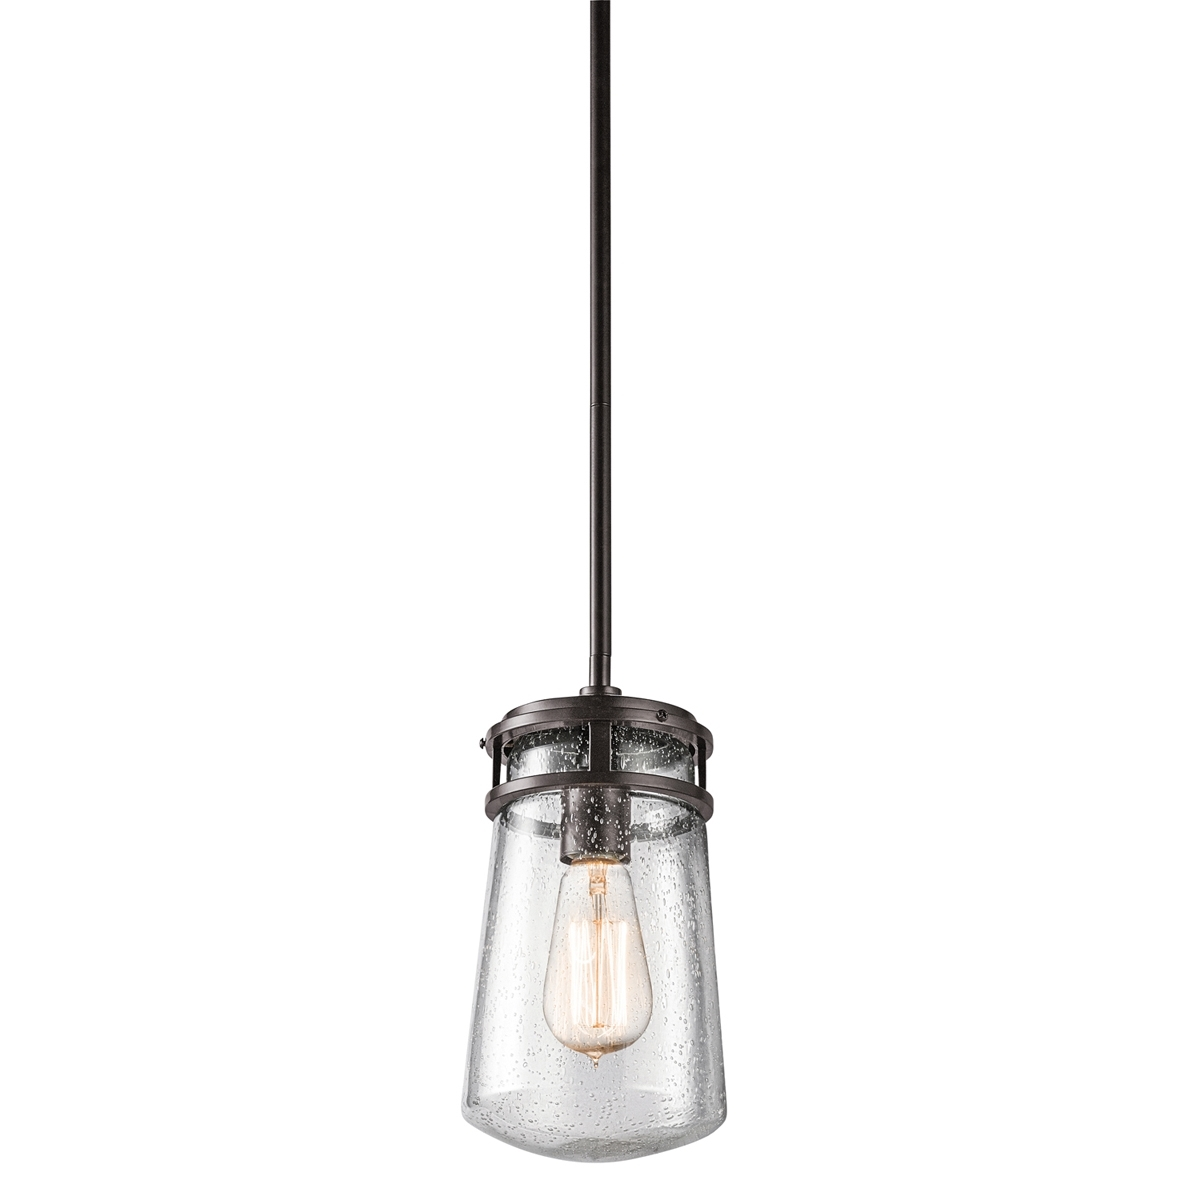 Outdoor Hanging Lamps In Most Popular Nautical, Outdoor Hanging Lights, Outdoor Lights – Lamps Expo (View 12 of 20)